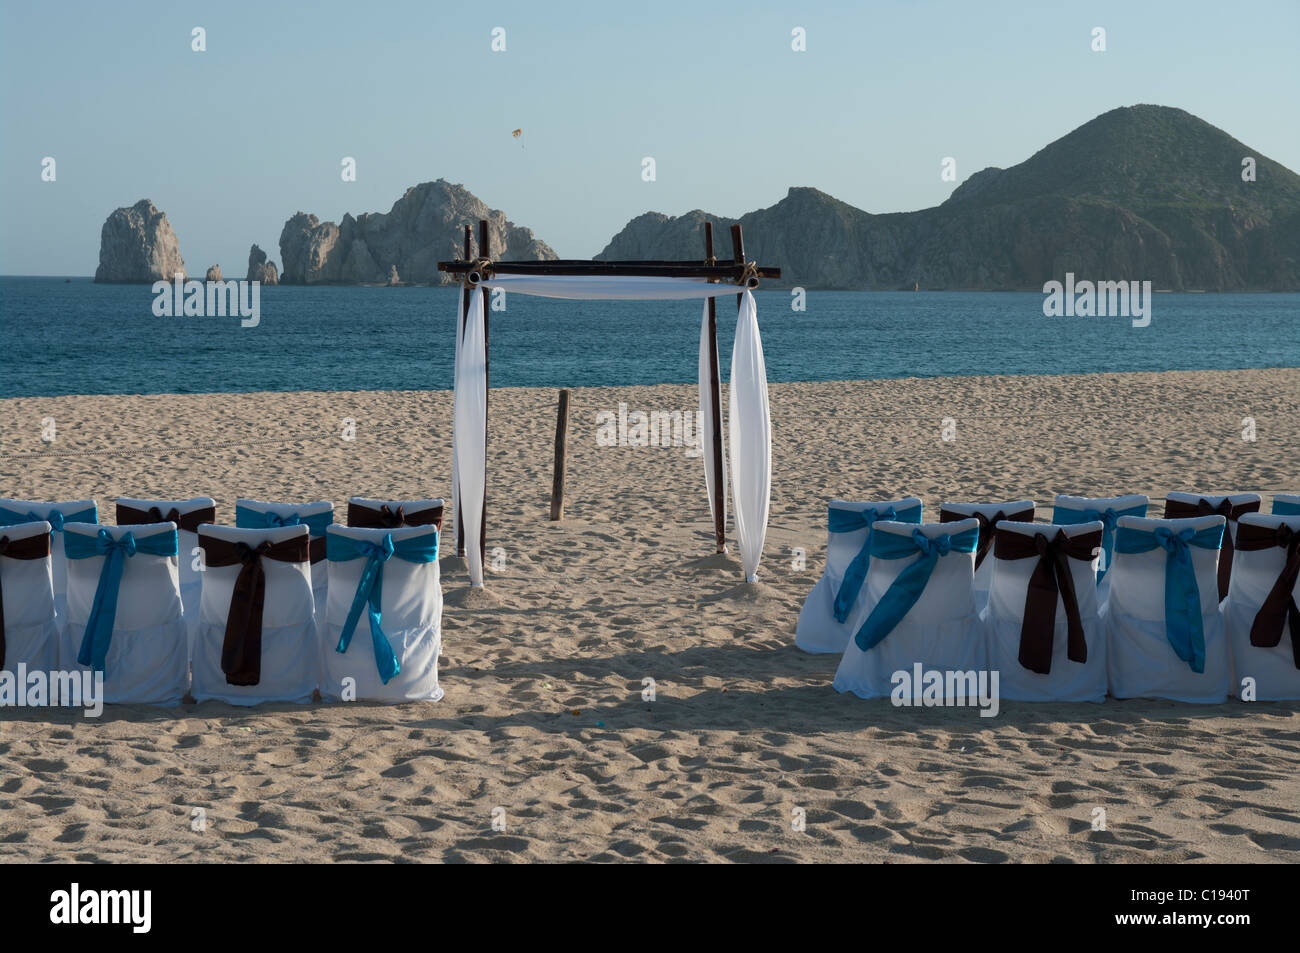 A Deserted Beach Set Up For A Wedding Ceremony. The Chair